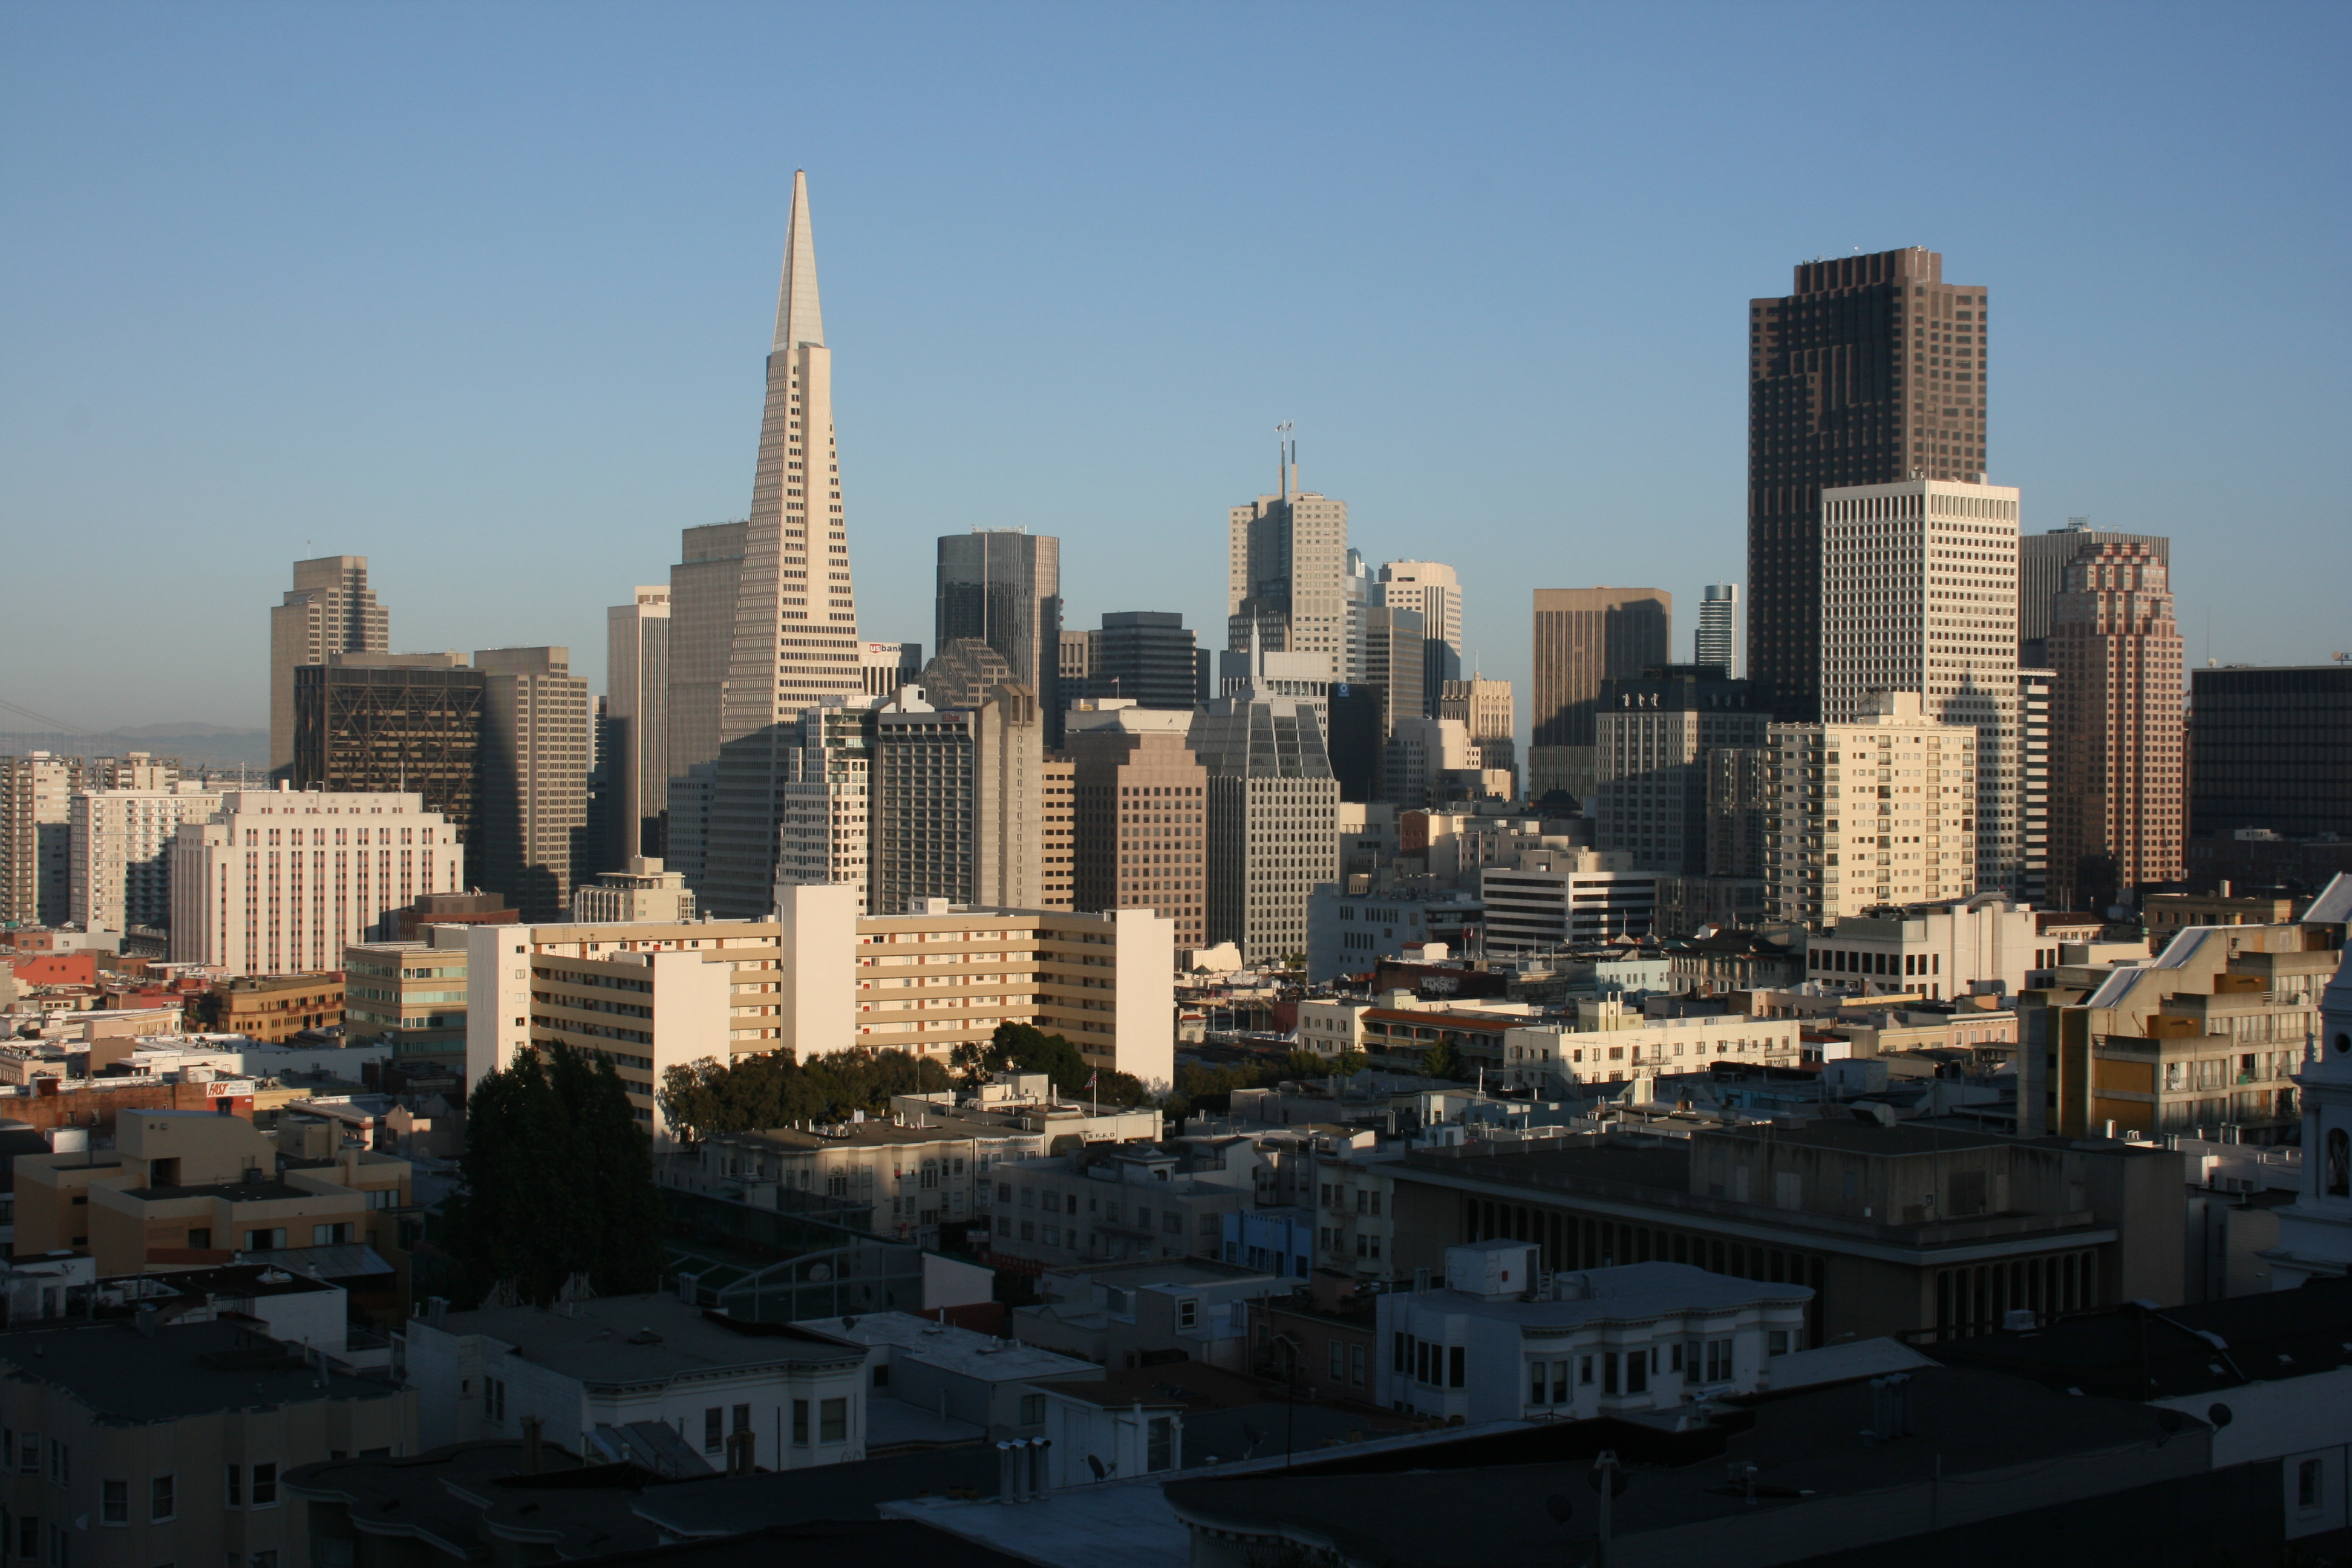 Downtown from Russian Hill, a bit nicer part of town.